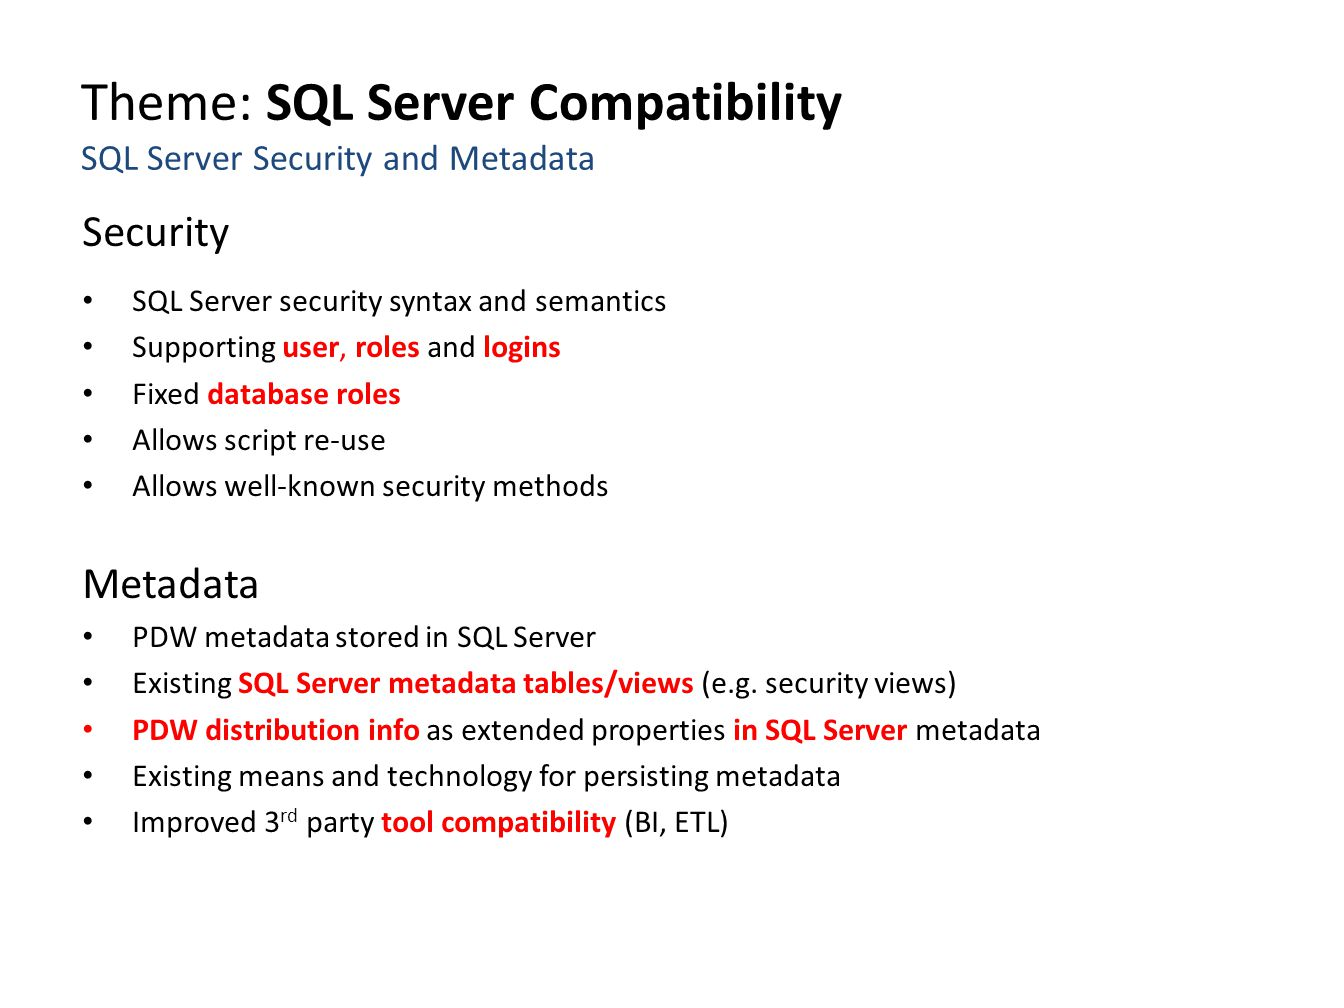 Theme: SQL Server Compatibility SQL Server Security and Metadata Security SQL Server security syntax and semantics Supporting user, roles and logins Fixed database roles Allows script re-use Allows well-known security methods Metadata PDW metadata stored in SQL Server Existing SQL Server metadata tables/views (e.g.